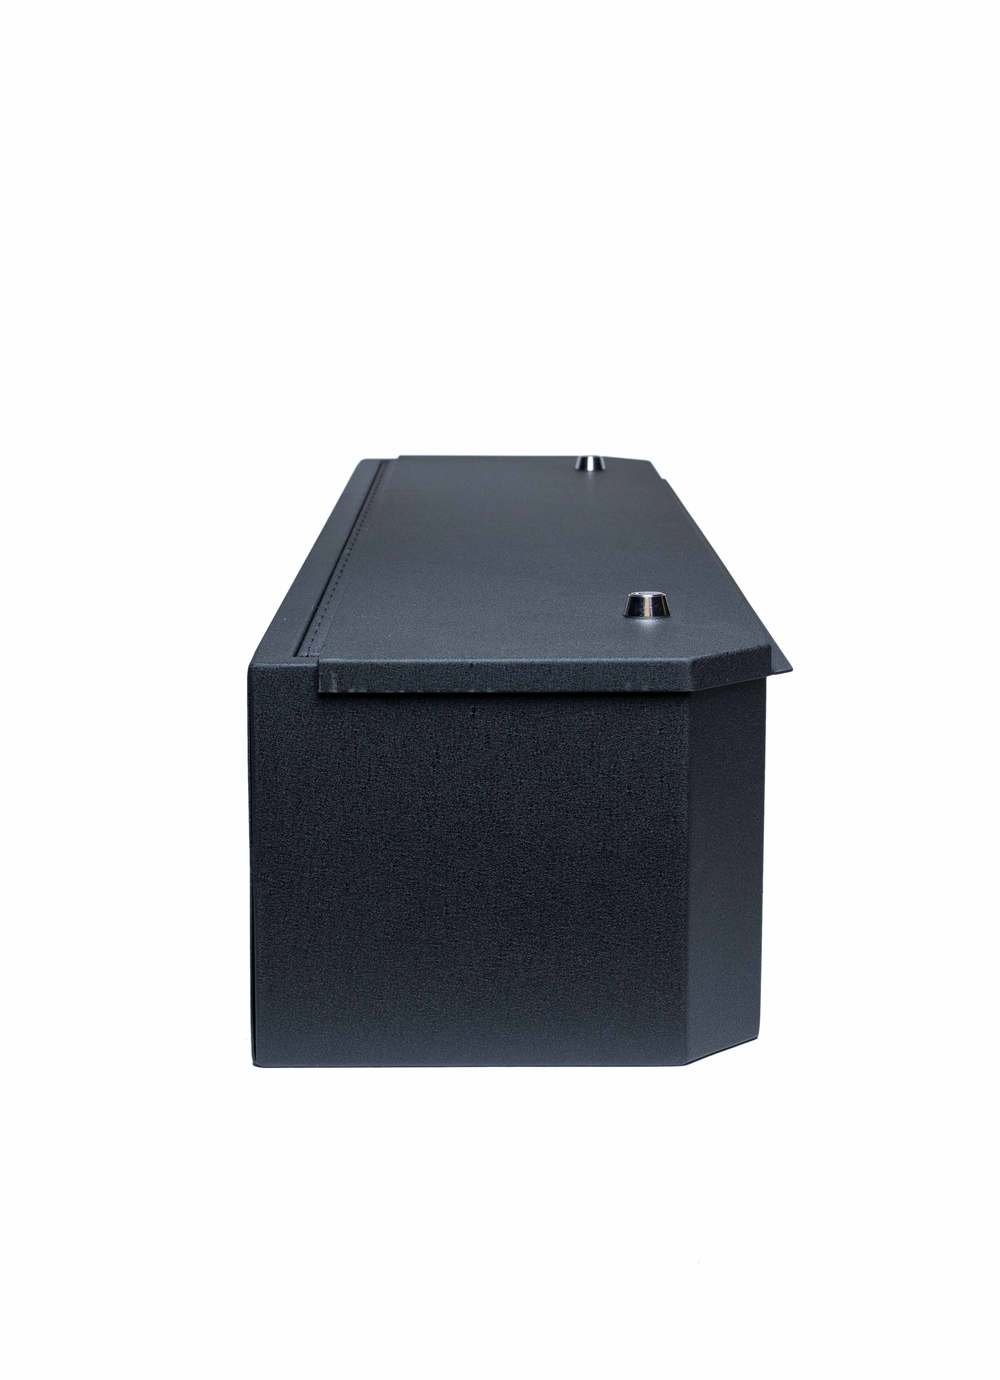 TOP LOADER WEAPON LOCKER- 7413 - Side Closed